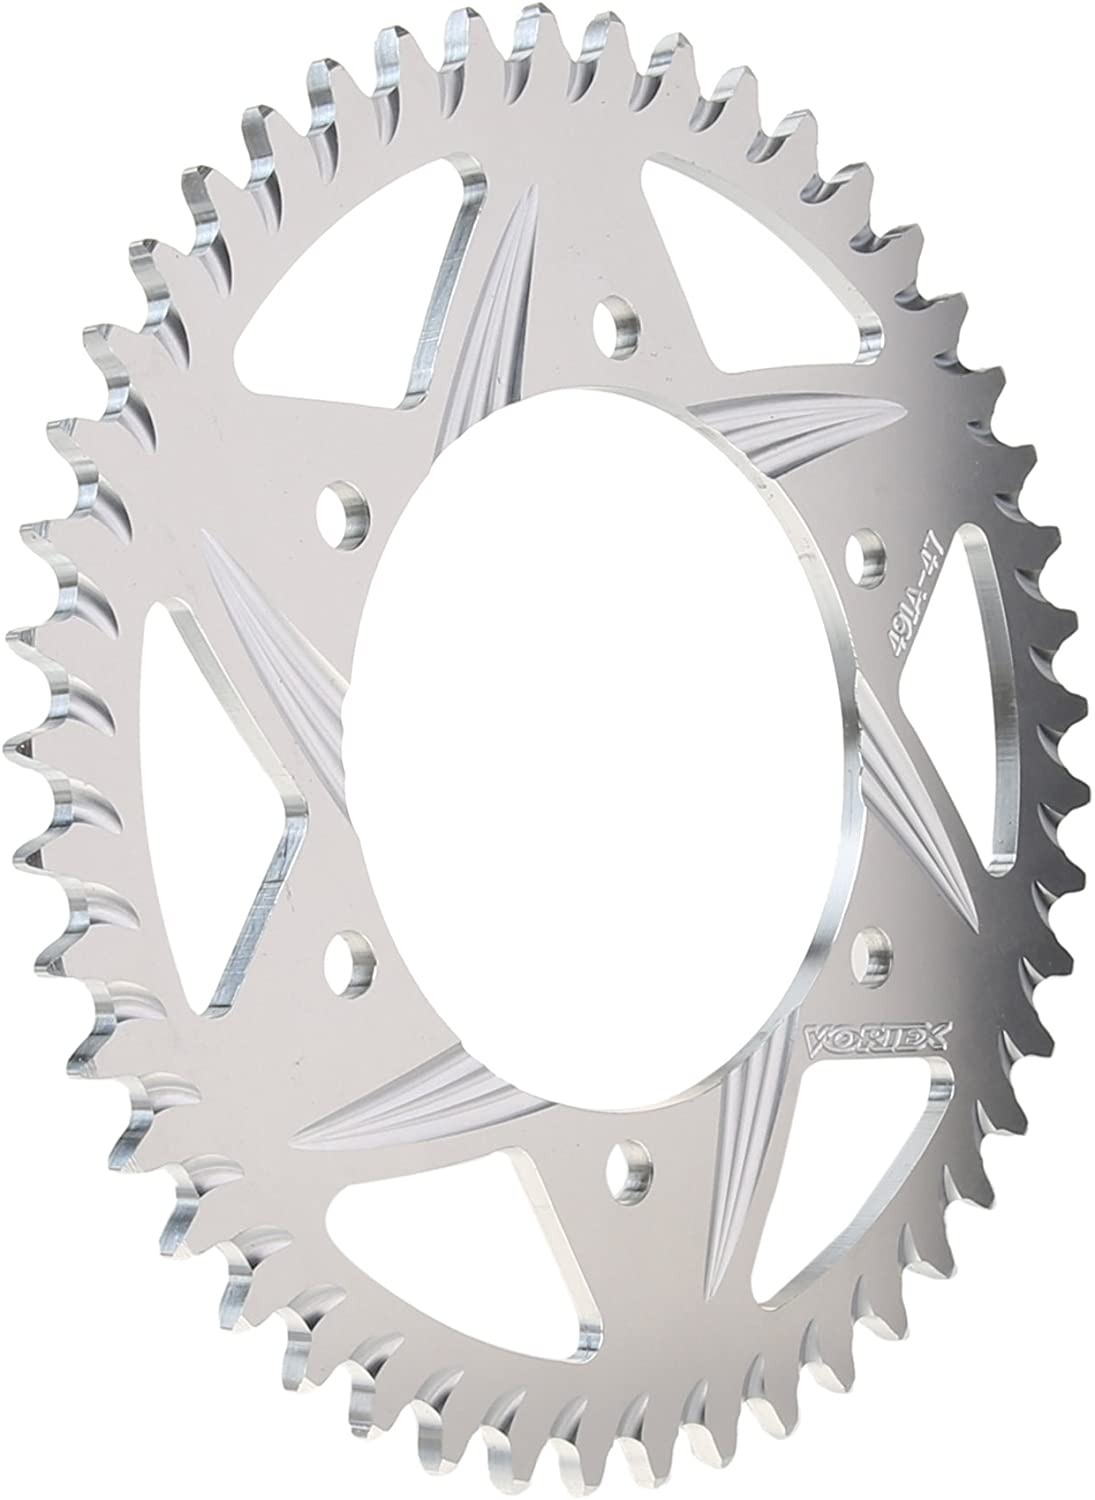 Vortex 491A-47 New arrival Silver 47-Tooth Rear Sprocket Luxury goods